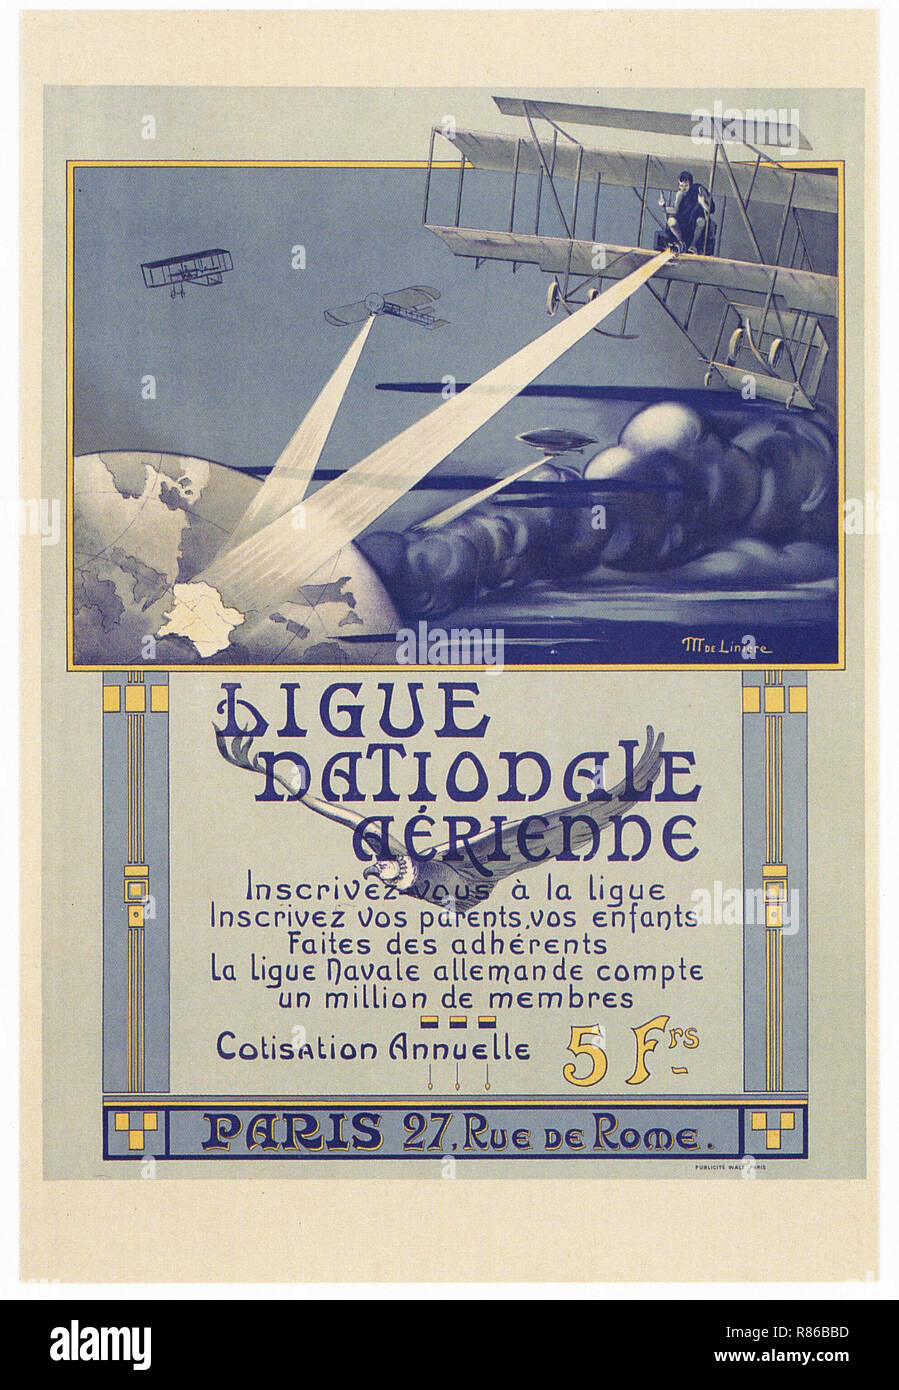 Ligue Nationale Aerienne 1908 - Vintage advertising poster - Stock Image